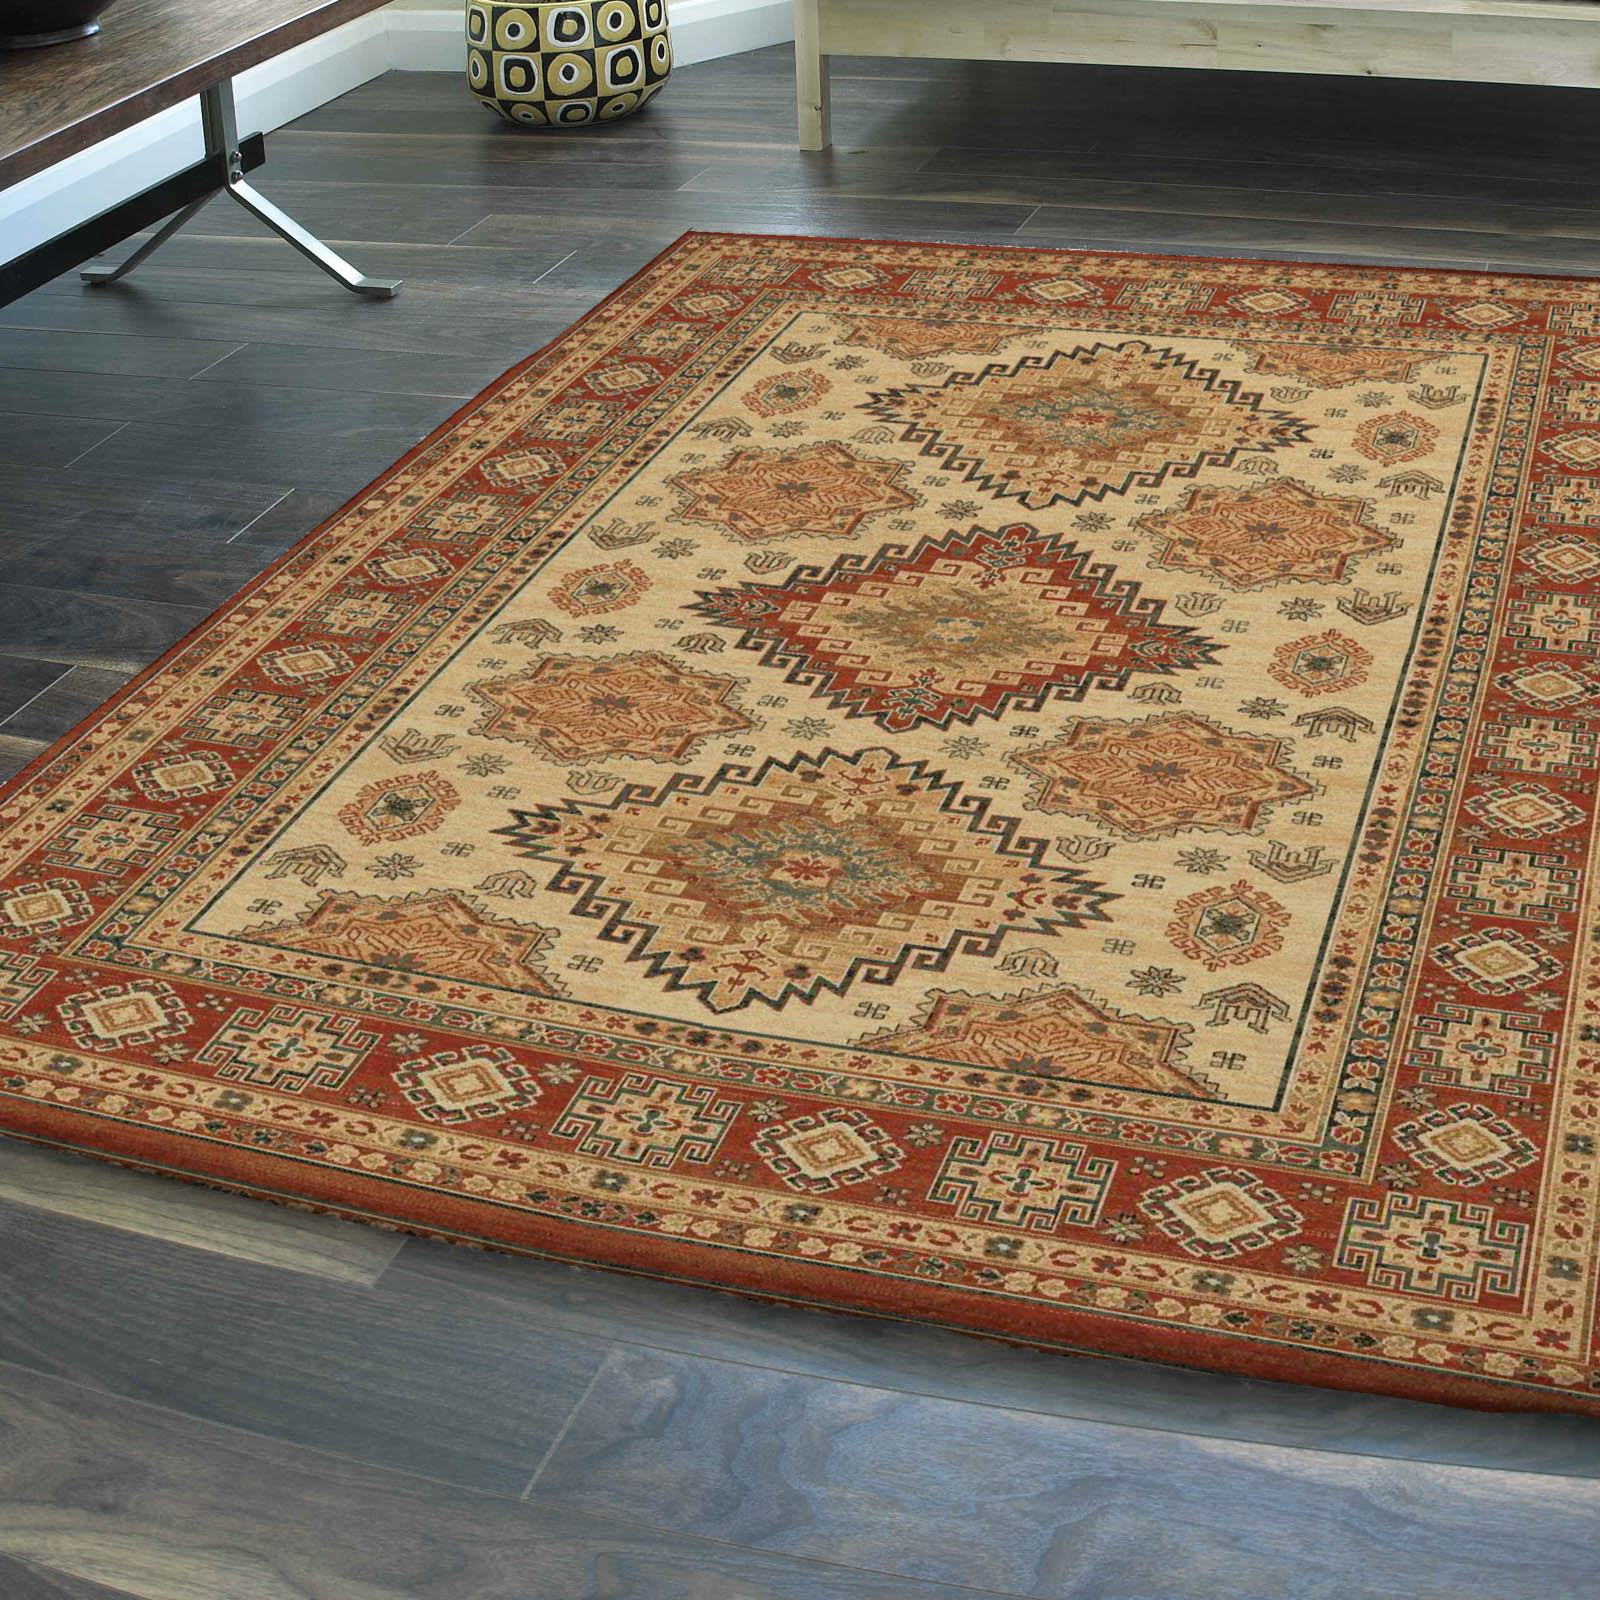 Discover our extensive collection of extra-large rugs online at Land of Rugs. Designs ranging from modern to classic, all with free mainland UK delivery.